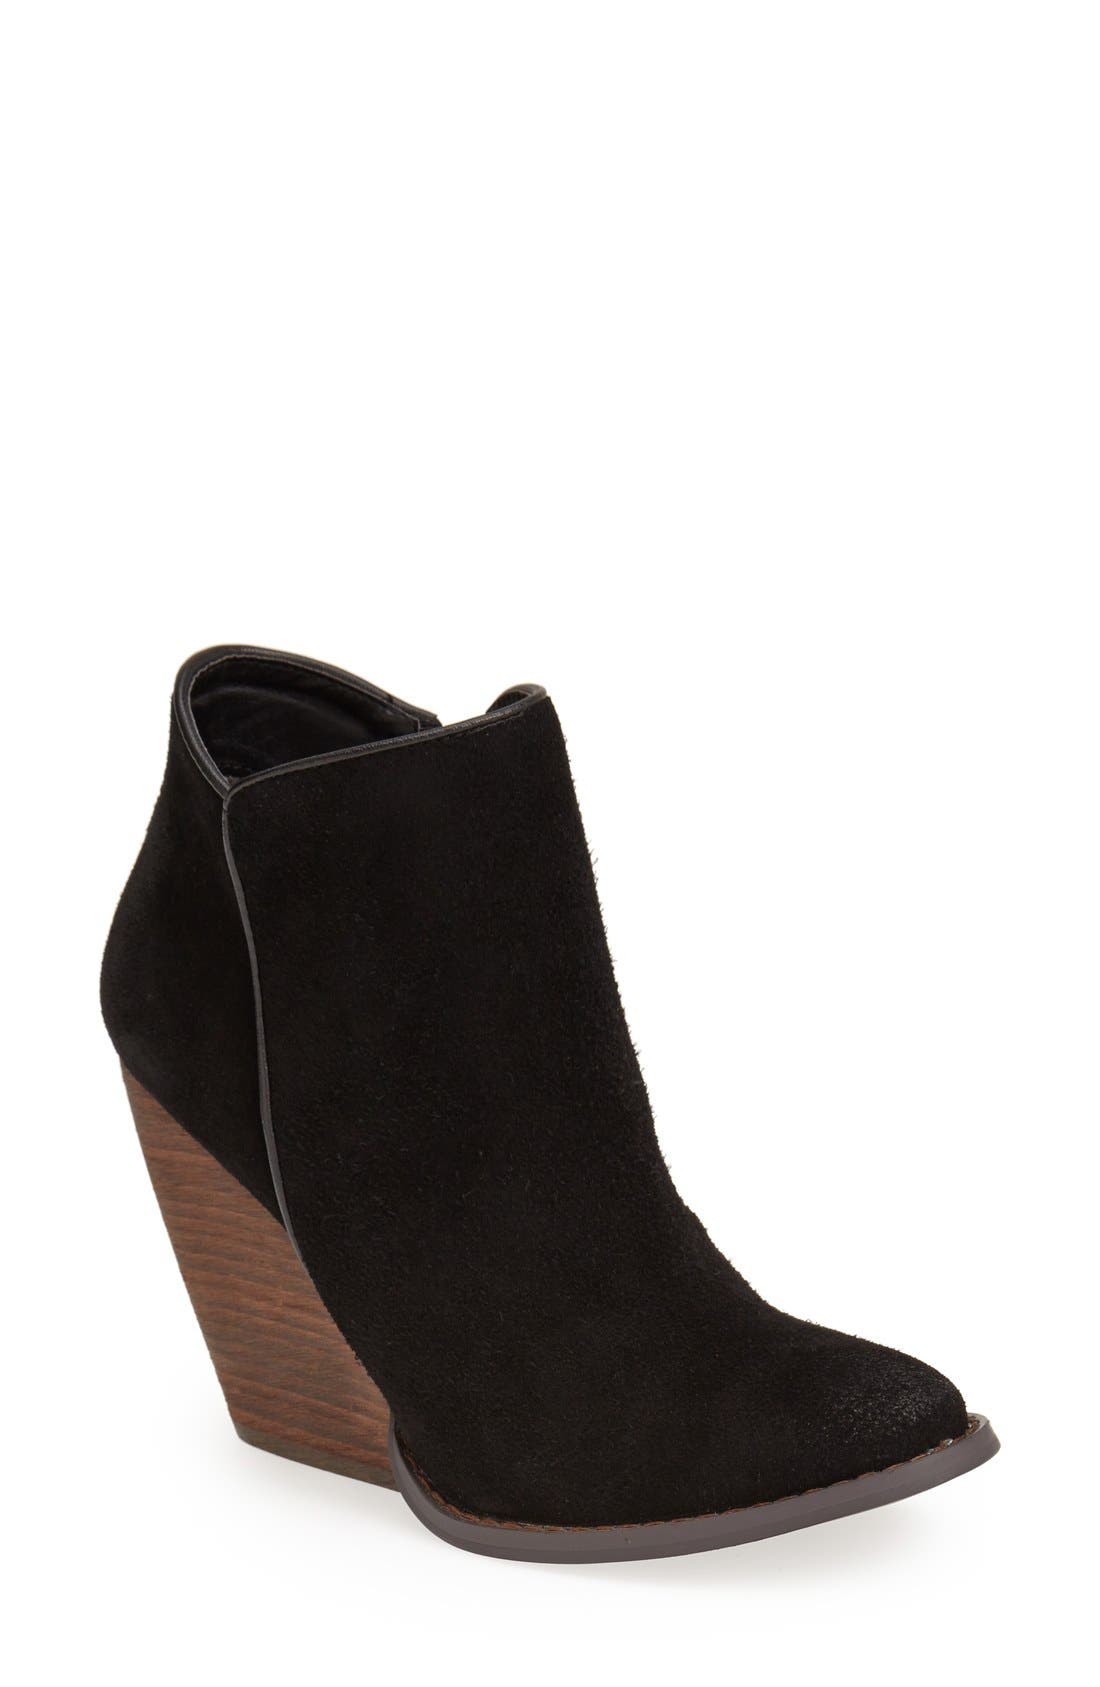 'Whitby' Demi Wedge Bootie, Main, color, 001